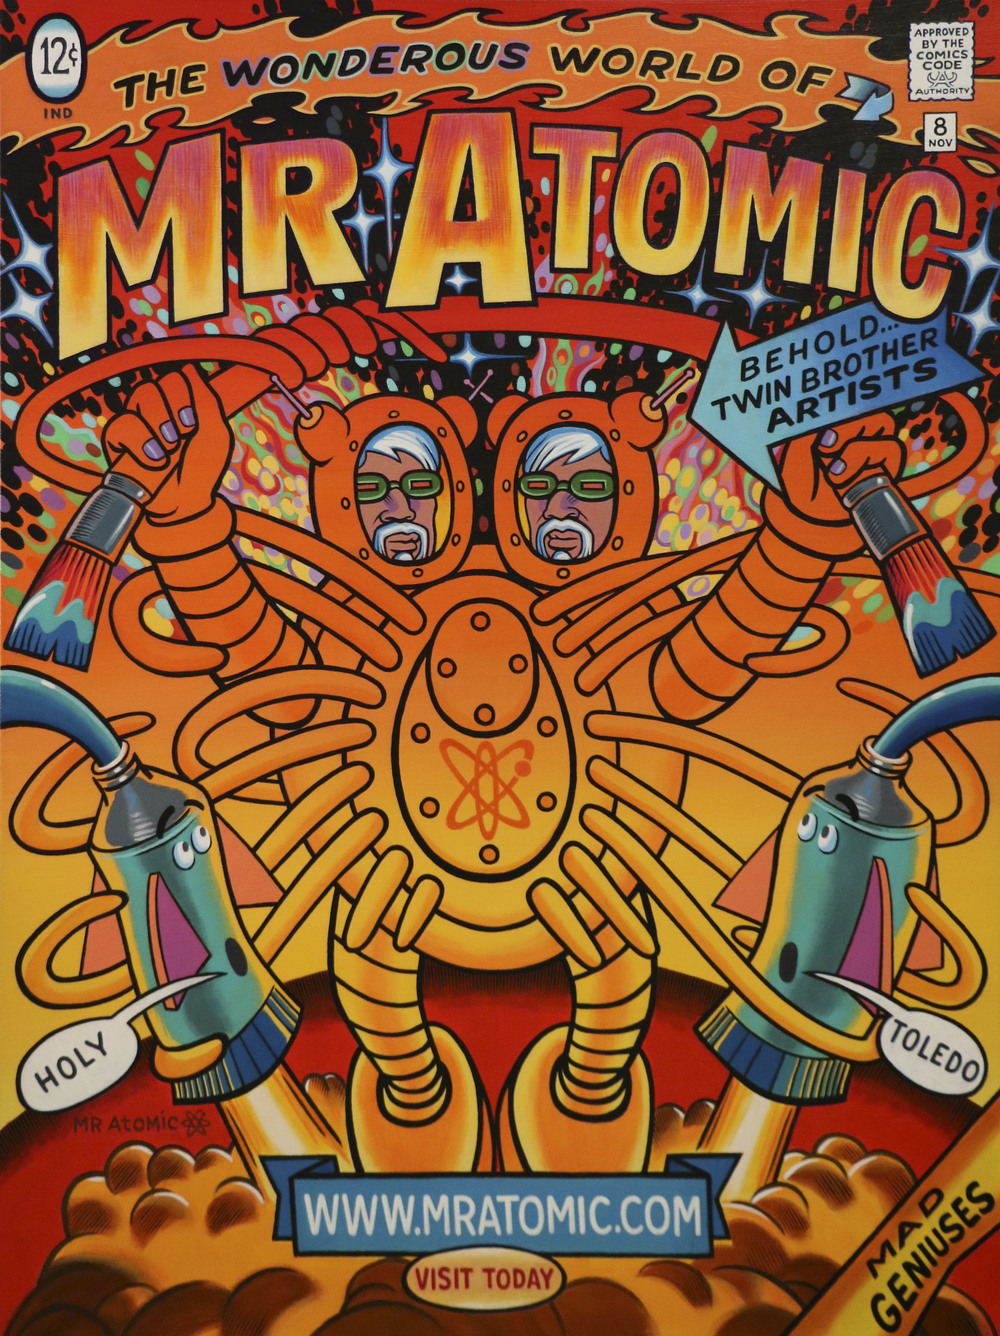 Mr Atomic Art Studio